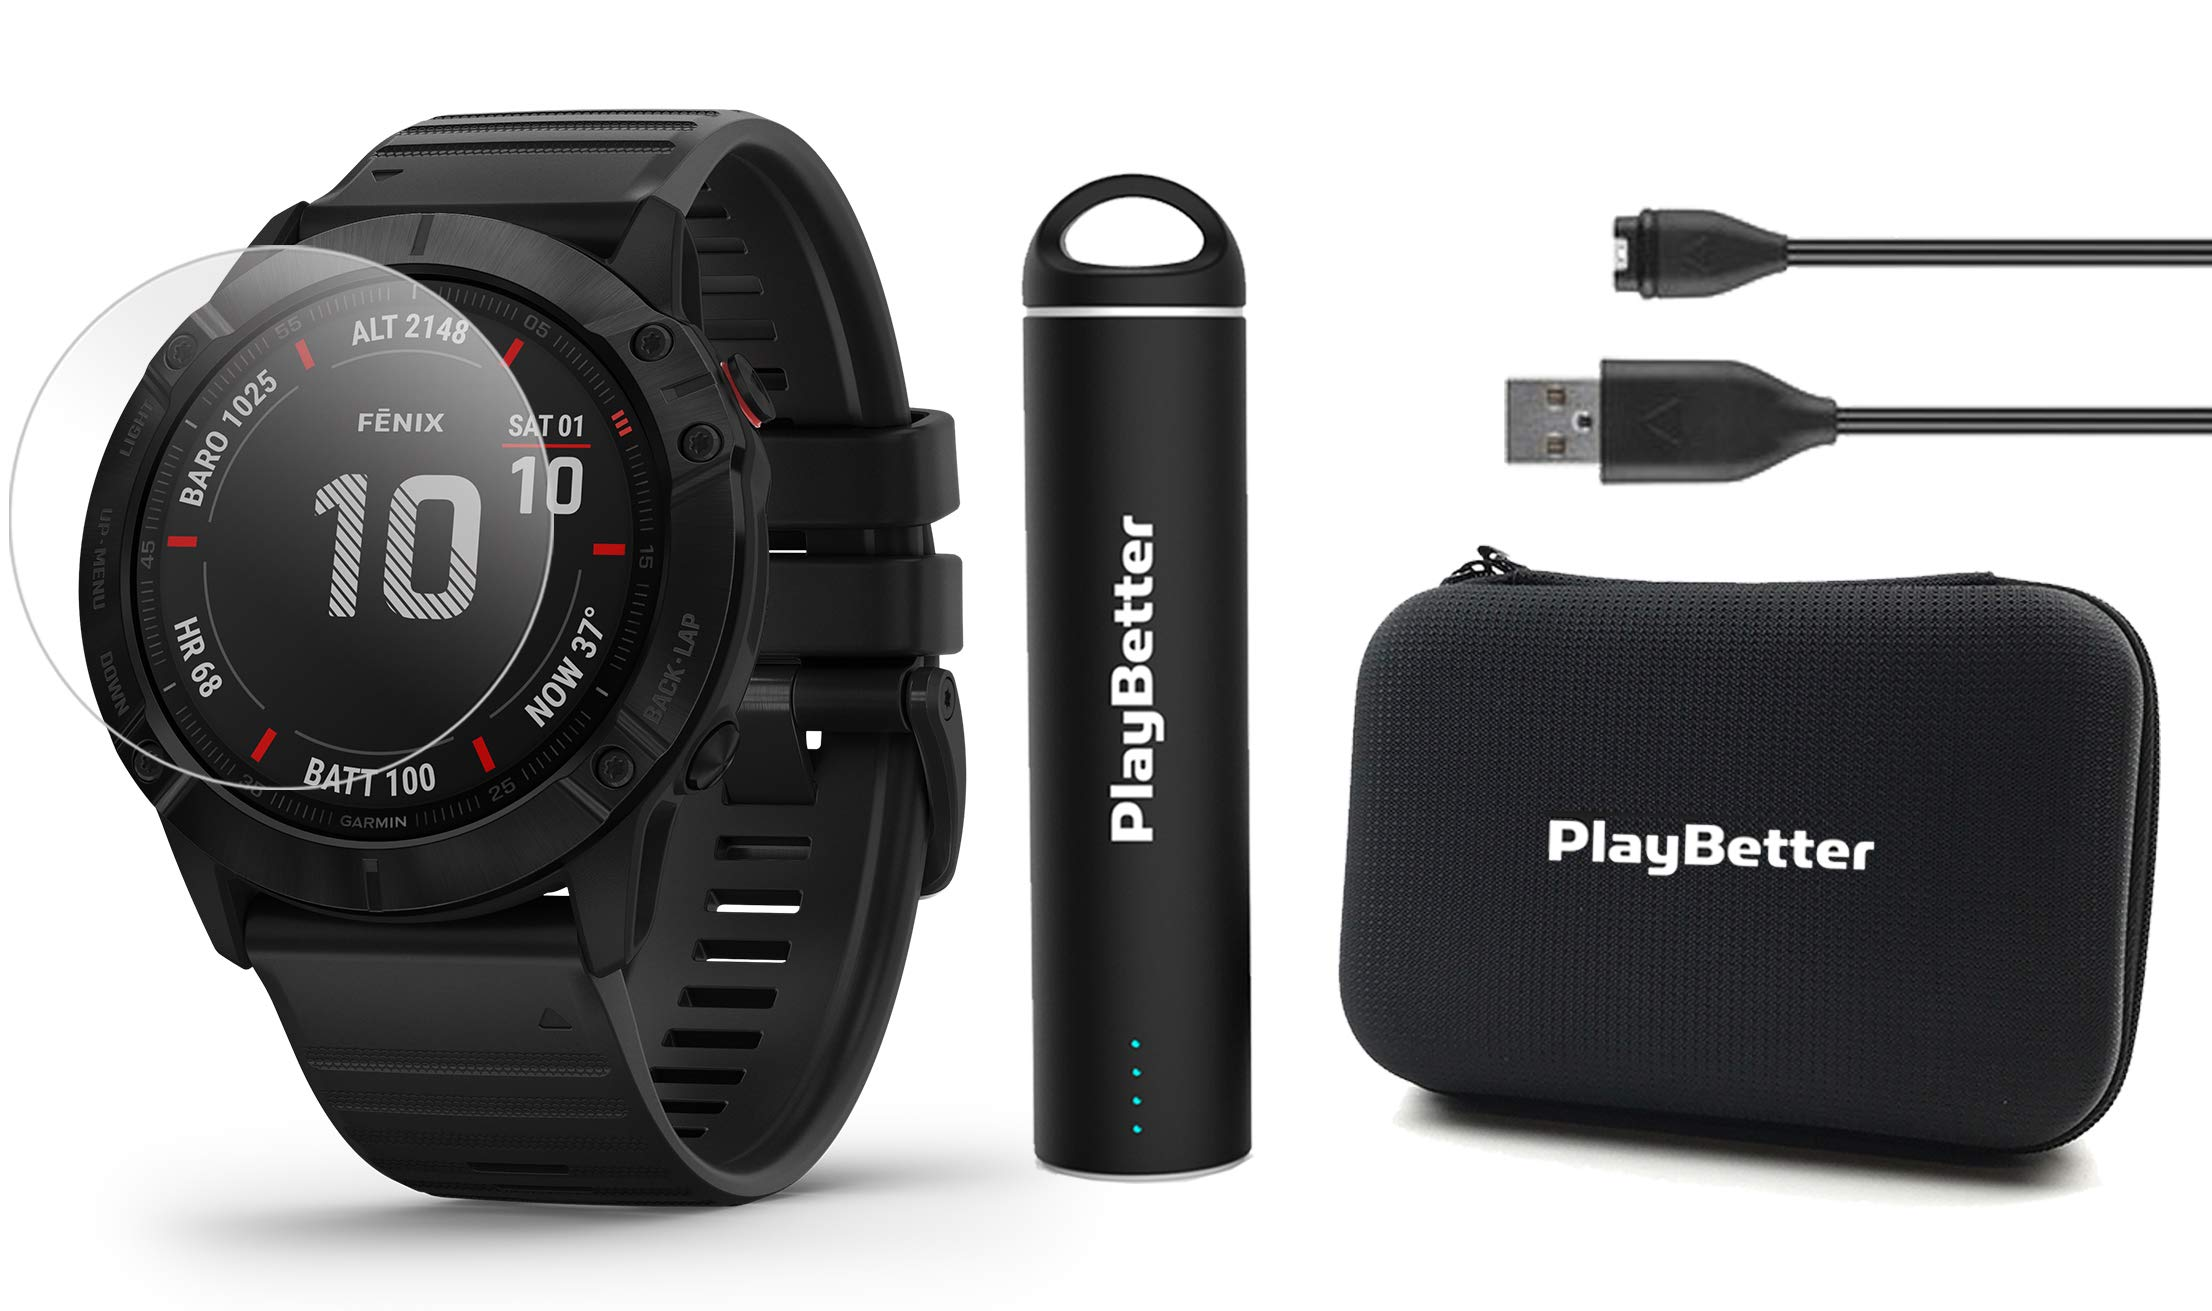 Garmin Fenix 6 Pro (Black with Black Band) Power Bundle with HD Screen Protectors, PlayBetter Portable Charger & Protective Hard Case | 2019 | PulseOx, ClimbPro, Maps, PacePro, Spotify, Music by PlayBetter